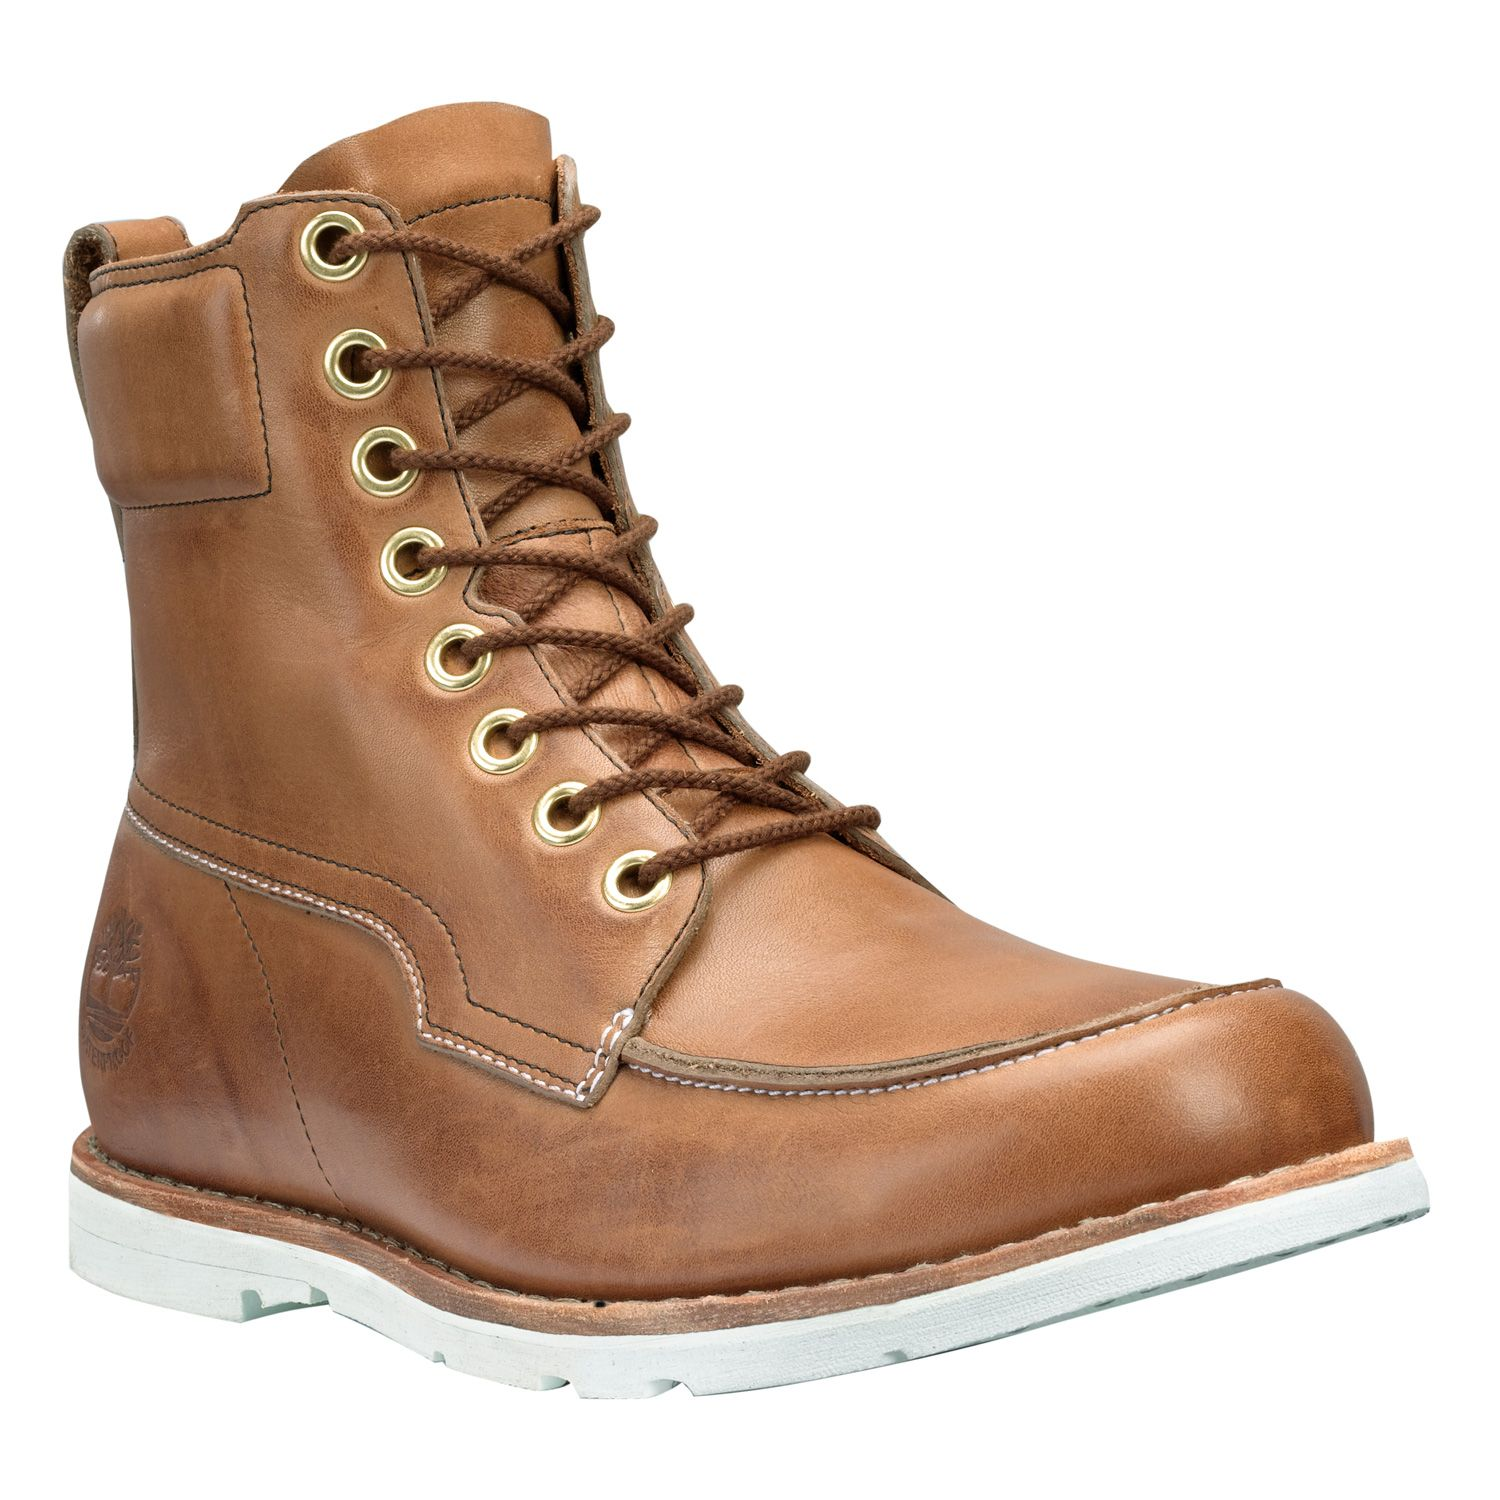 Timberland Boots, Footwear, Clothing